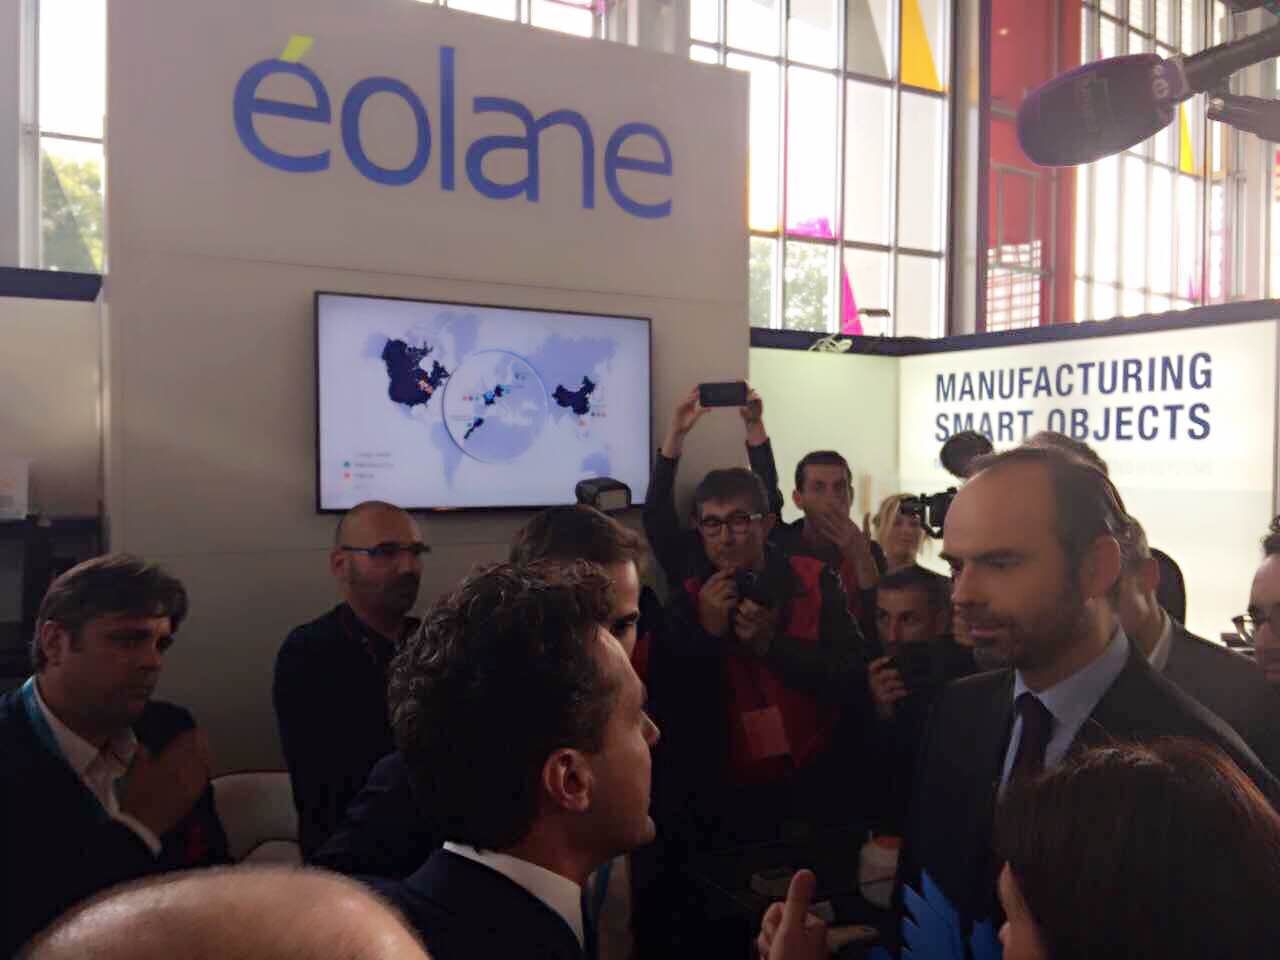 Premier Minister of France Mr. Édouard Philippe Visited Eolane1